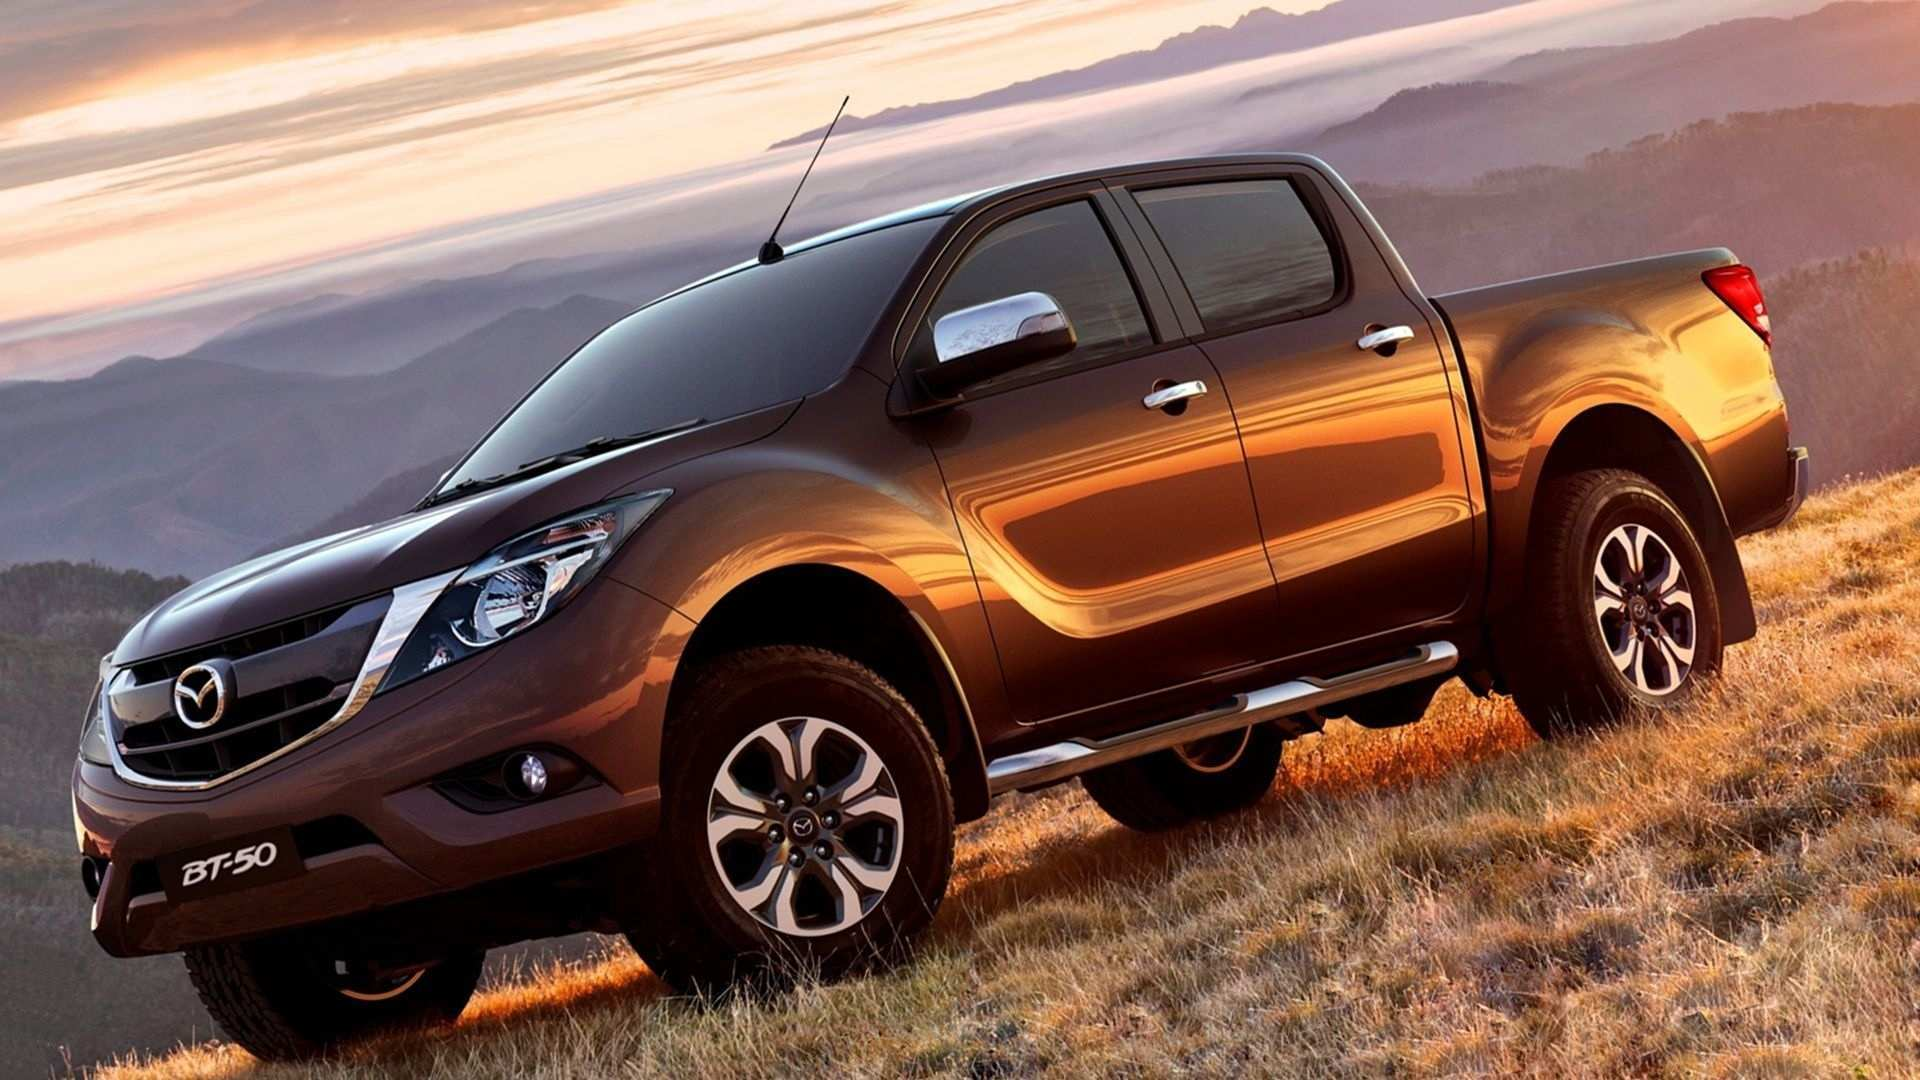 67 New 2019 Mazda Bt 50 Specs Performance